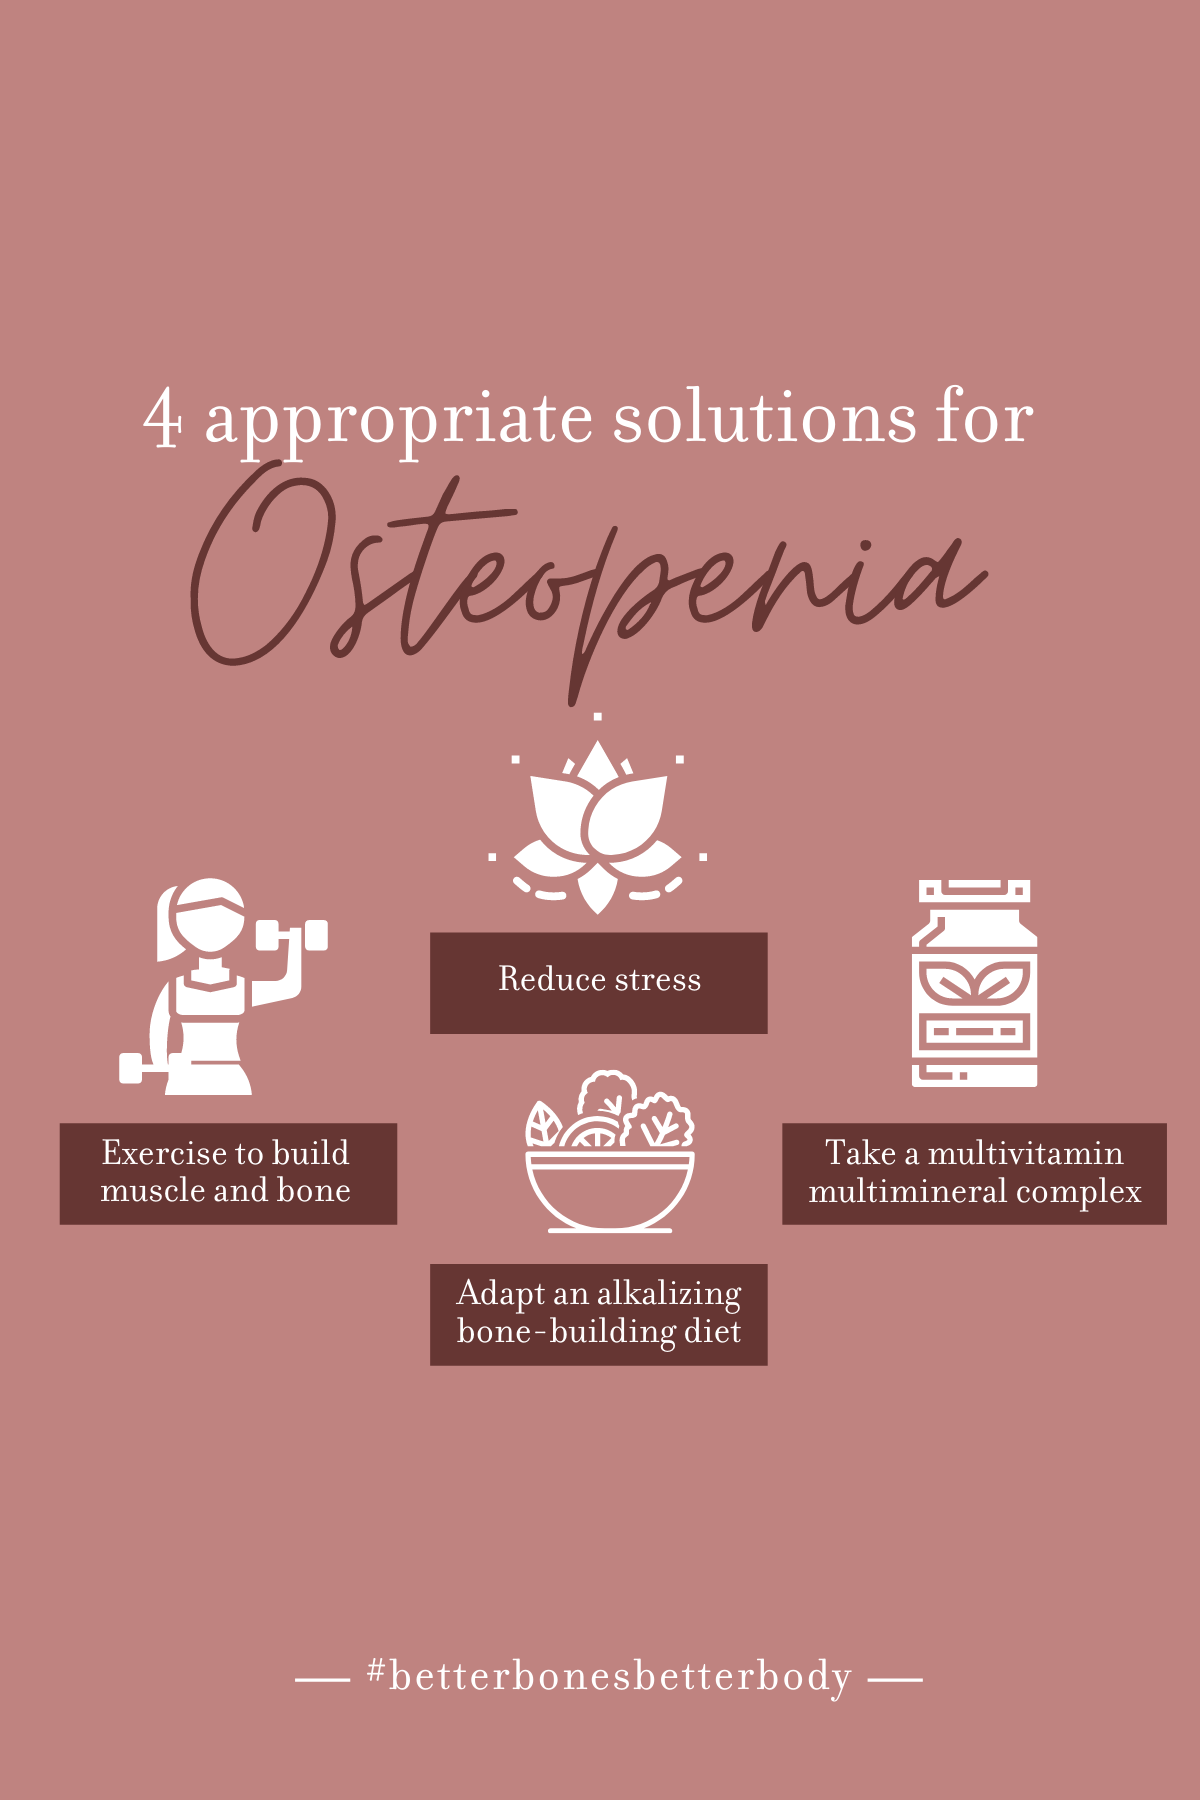 39+ Osteoporosis most likely results from ideas